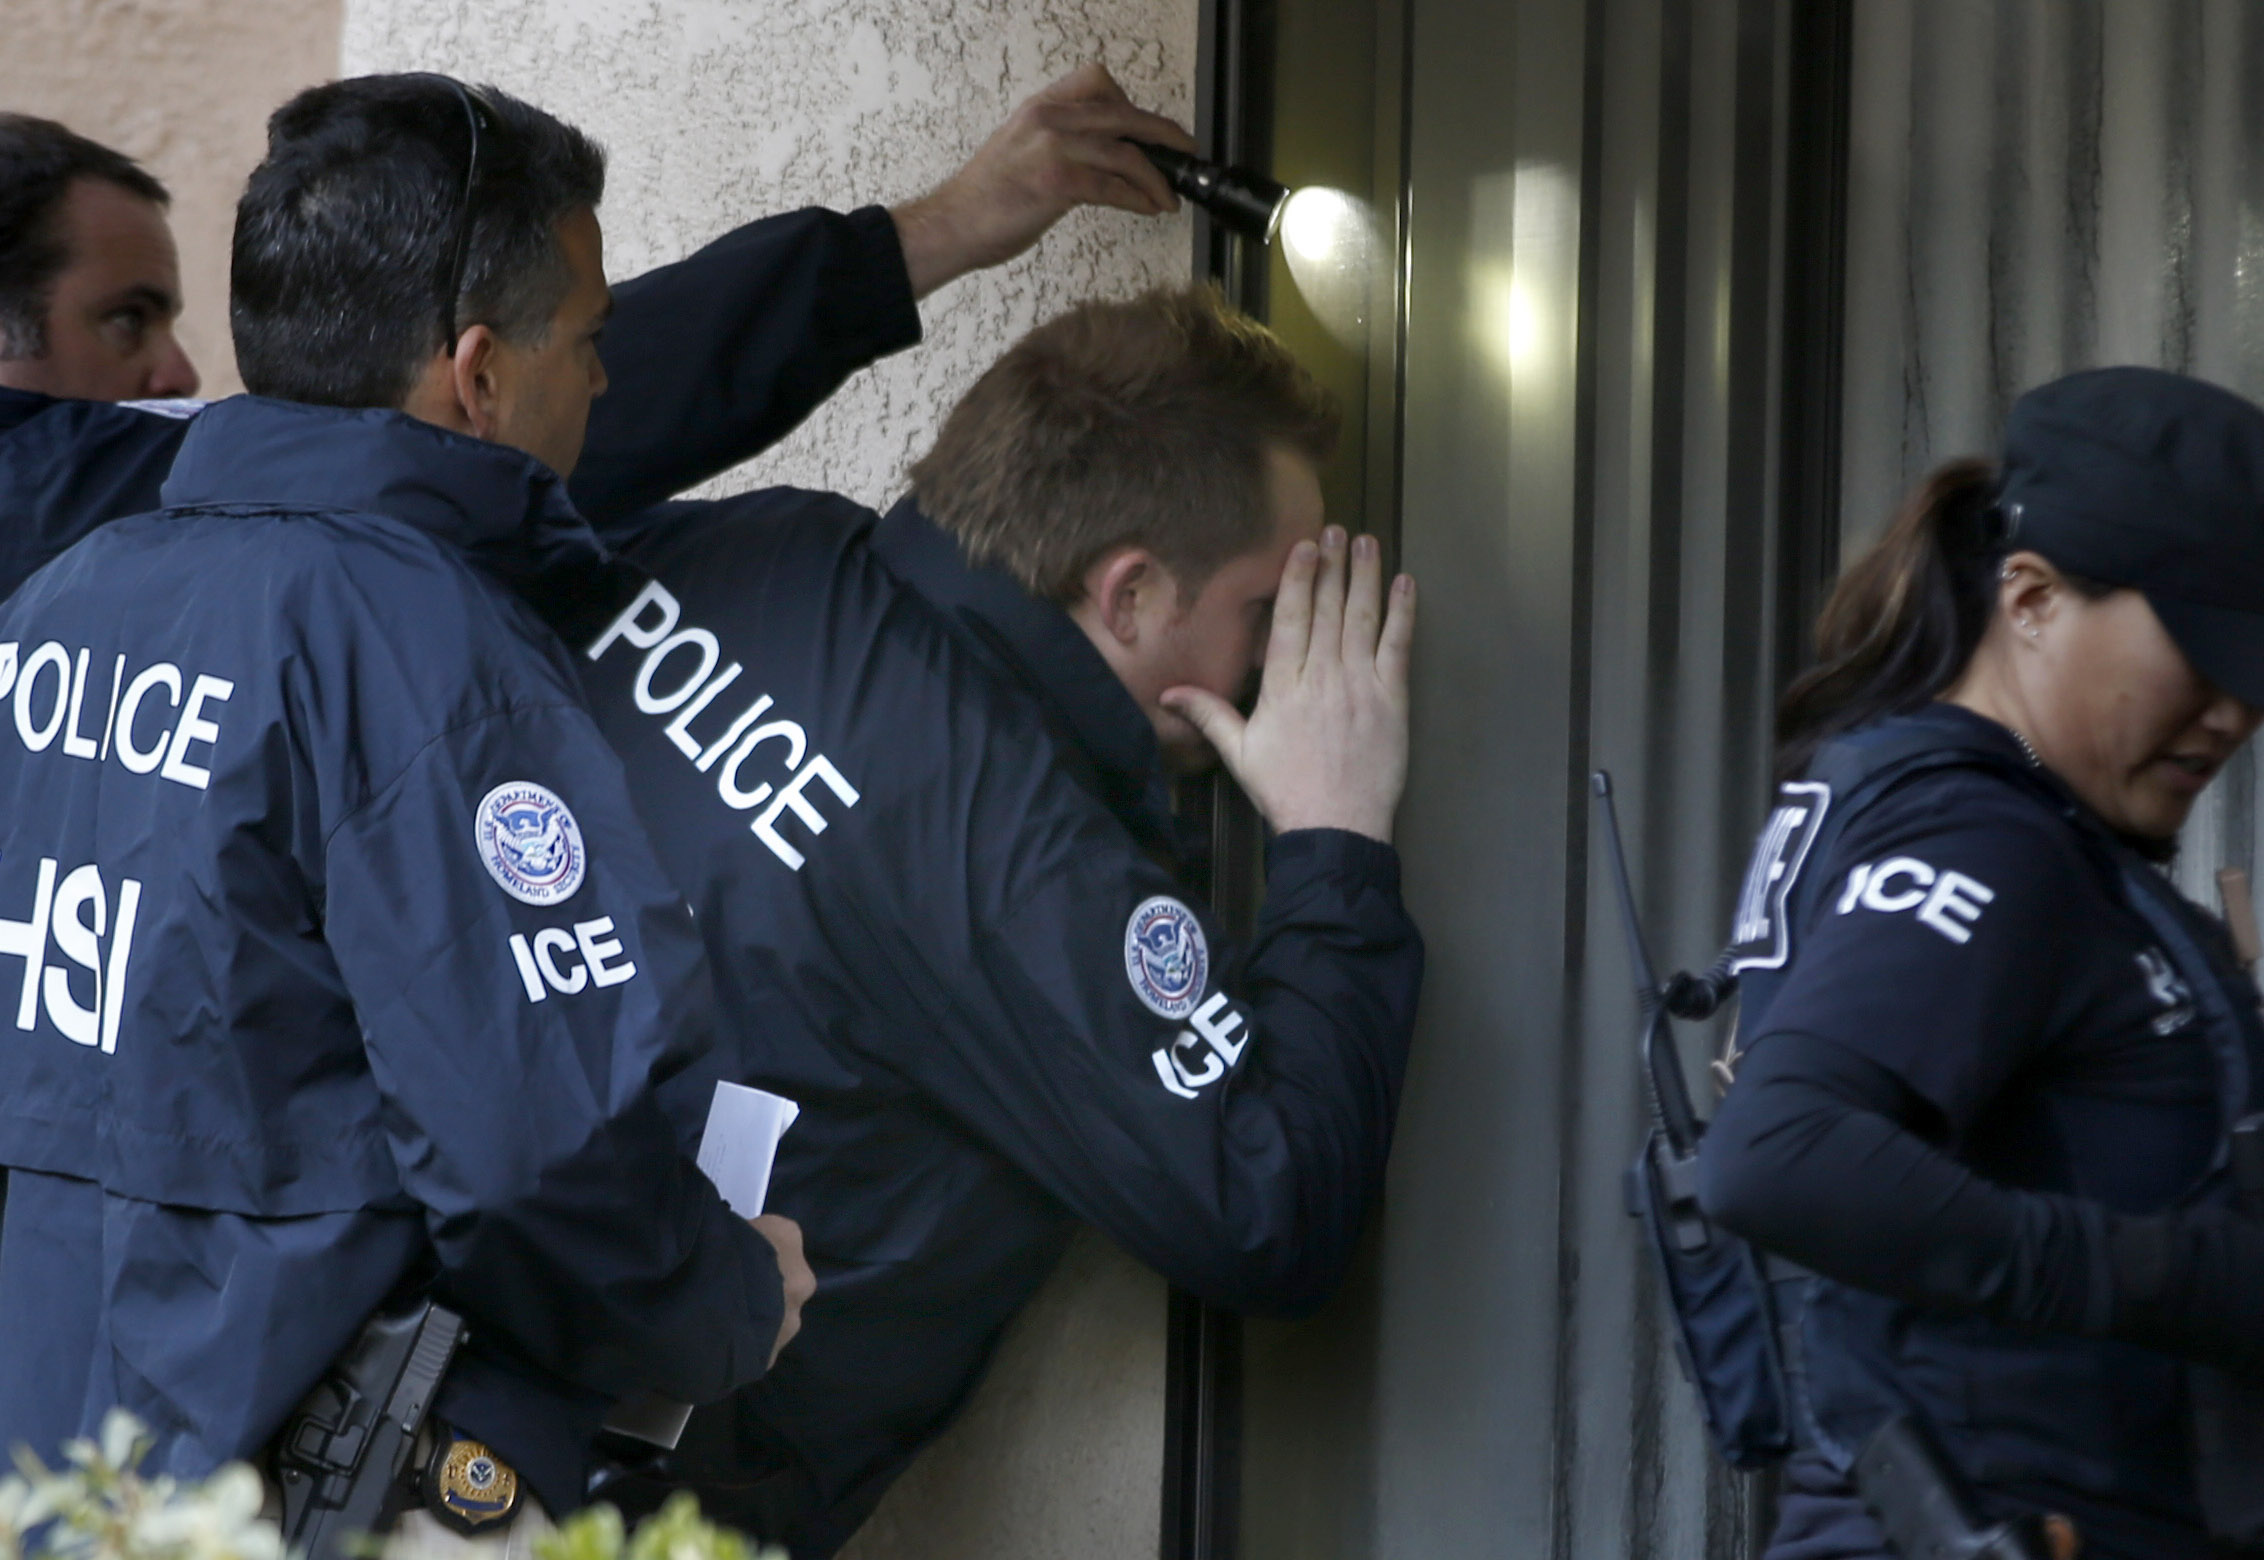 Homeland Security officials on an immigration investigation.